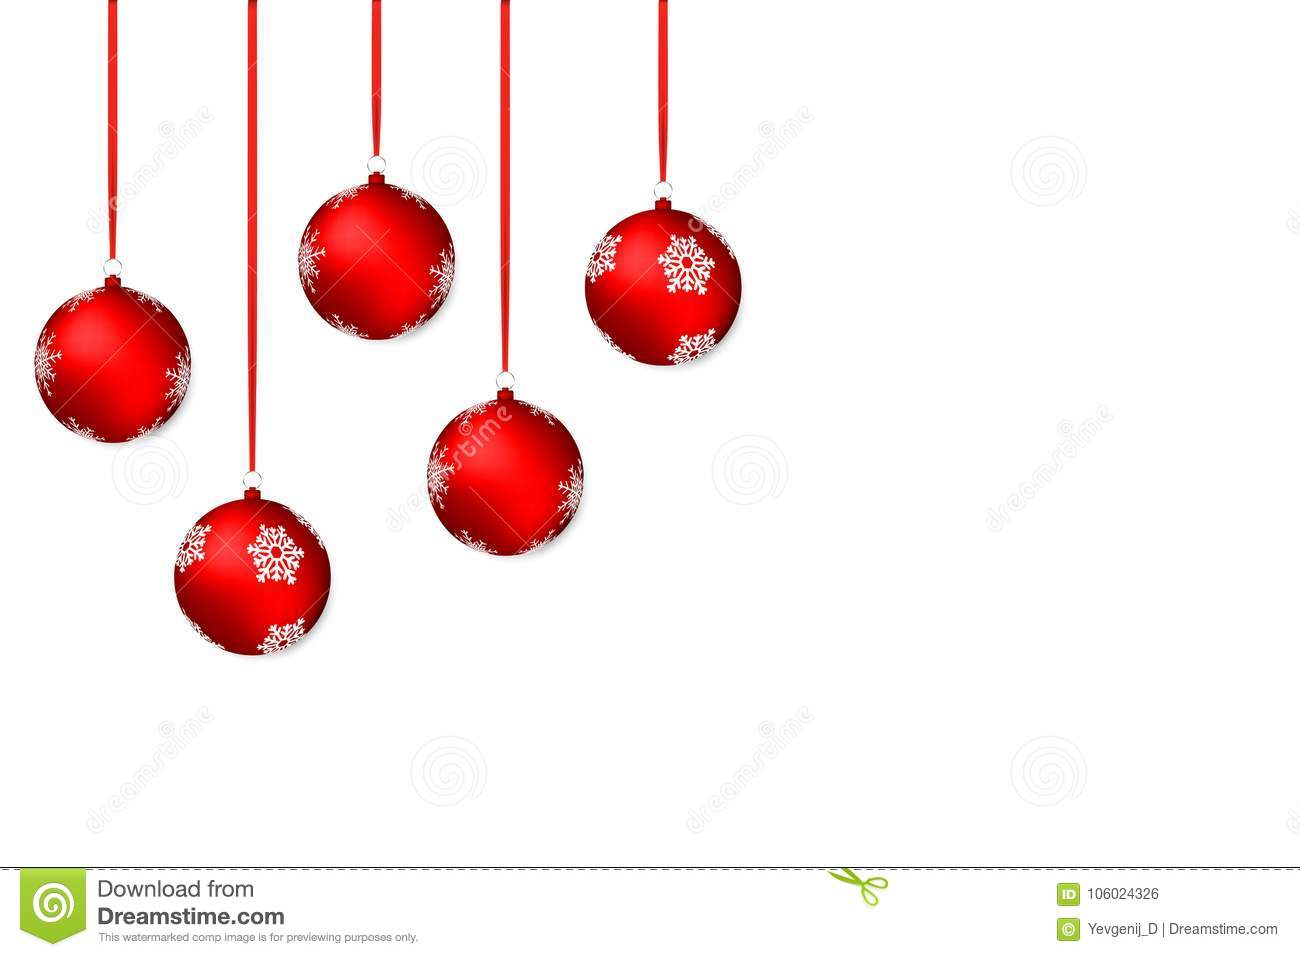 Christmas background. White holiday background with red christmas balls and ribbons